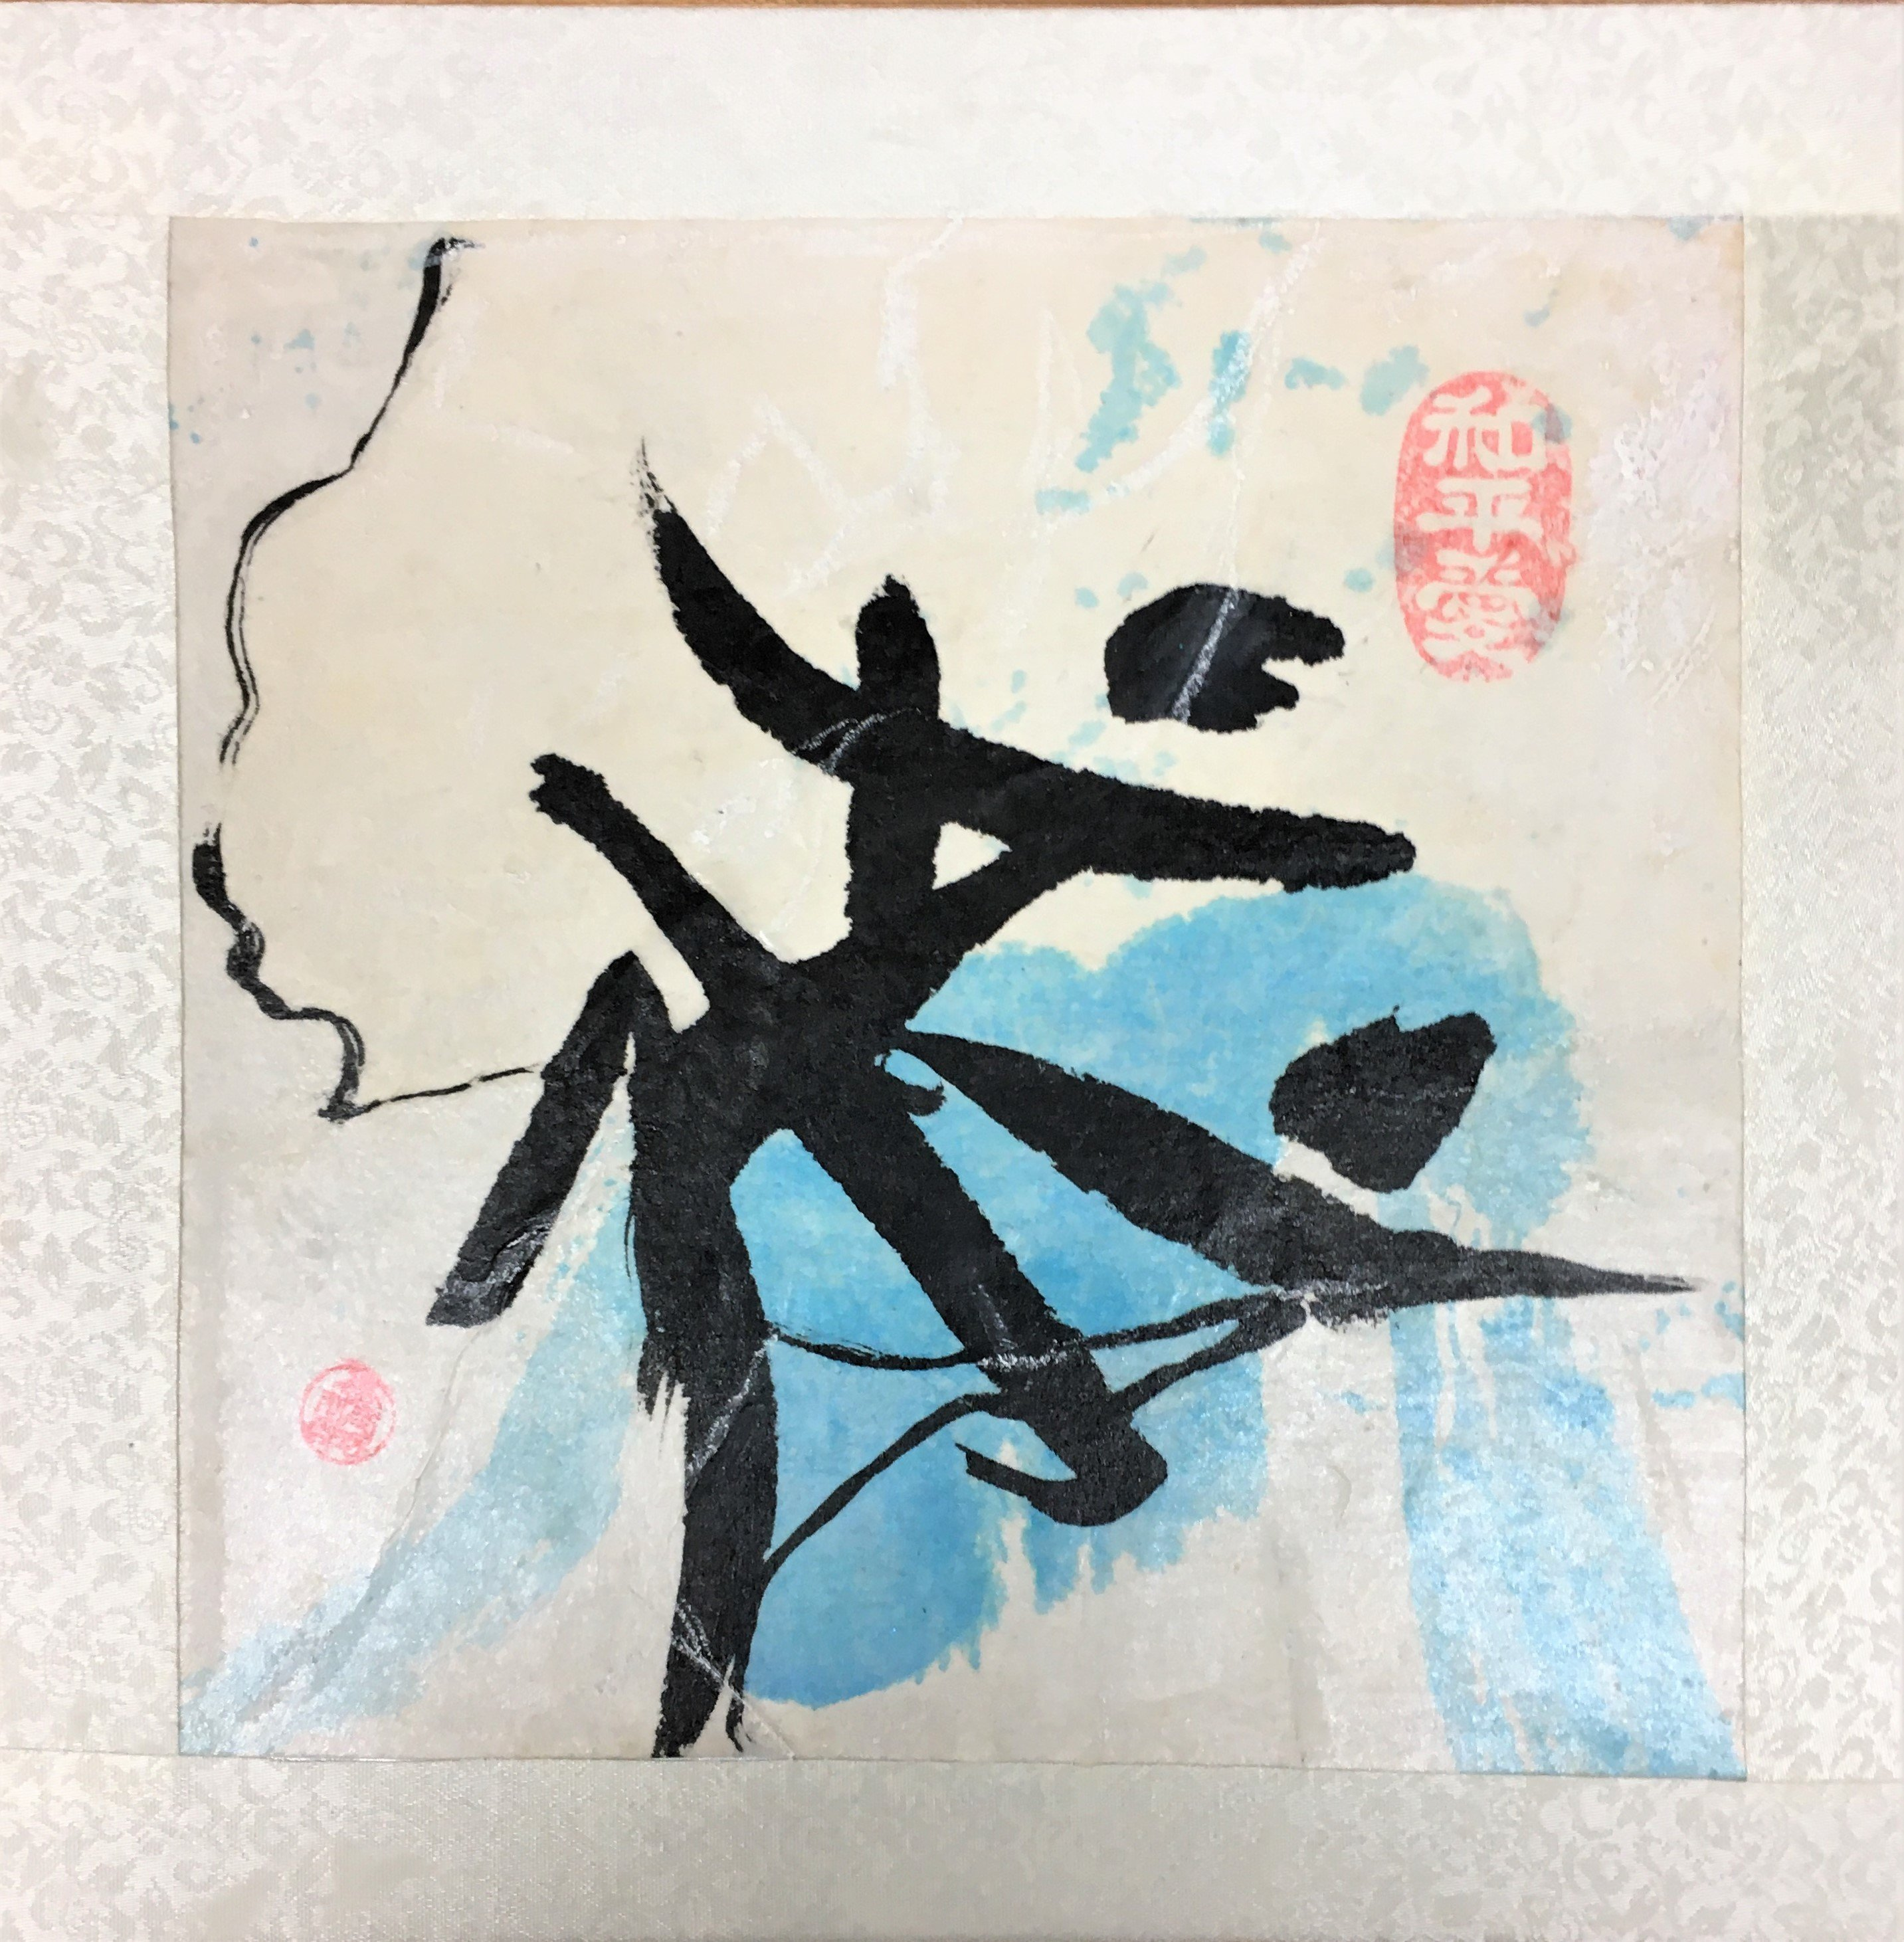 Kichung Lizee; Fire Water Series 7, 2020, Original Calligraphy, 12 x 12 inches. Artwork description: 241 expressive Eastern calligraphic brush work...